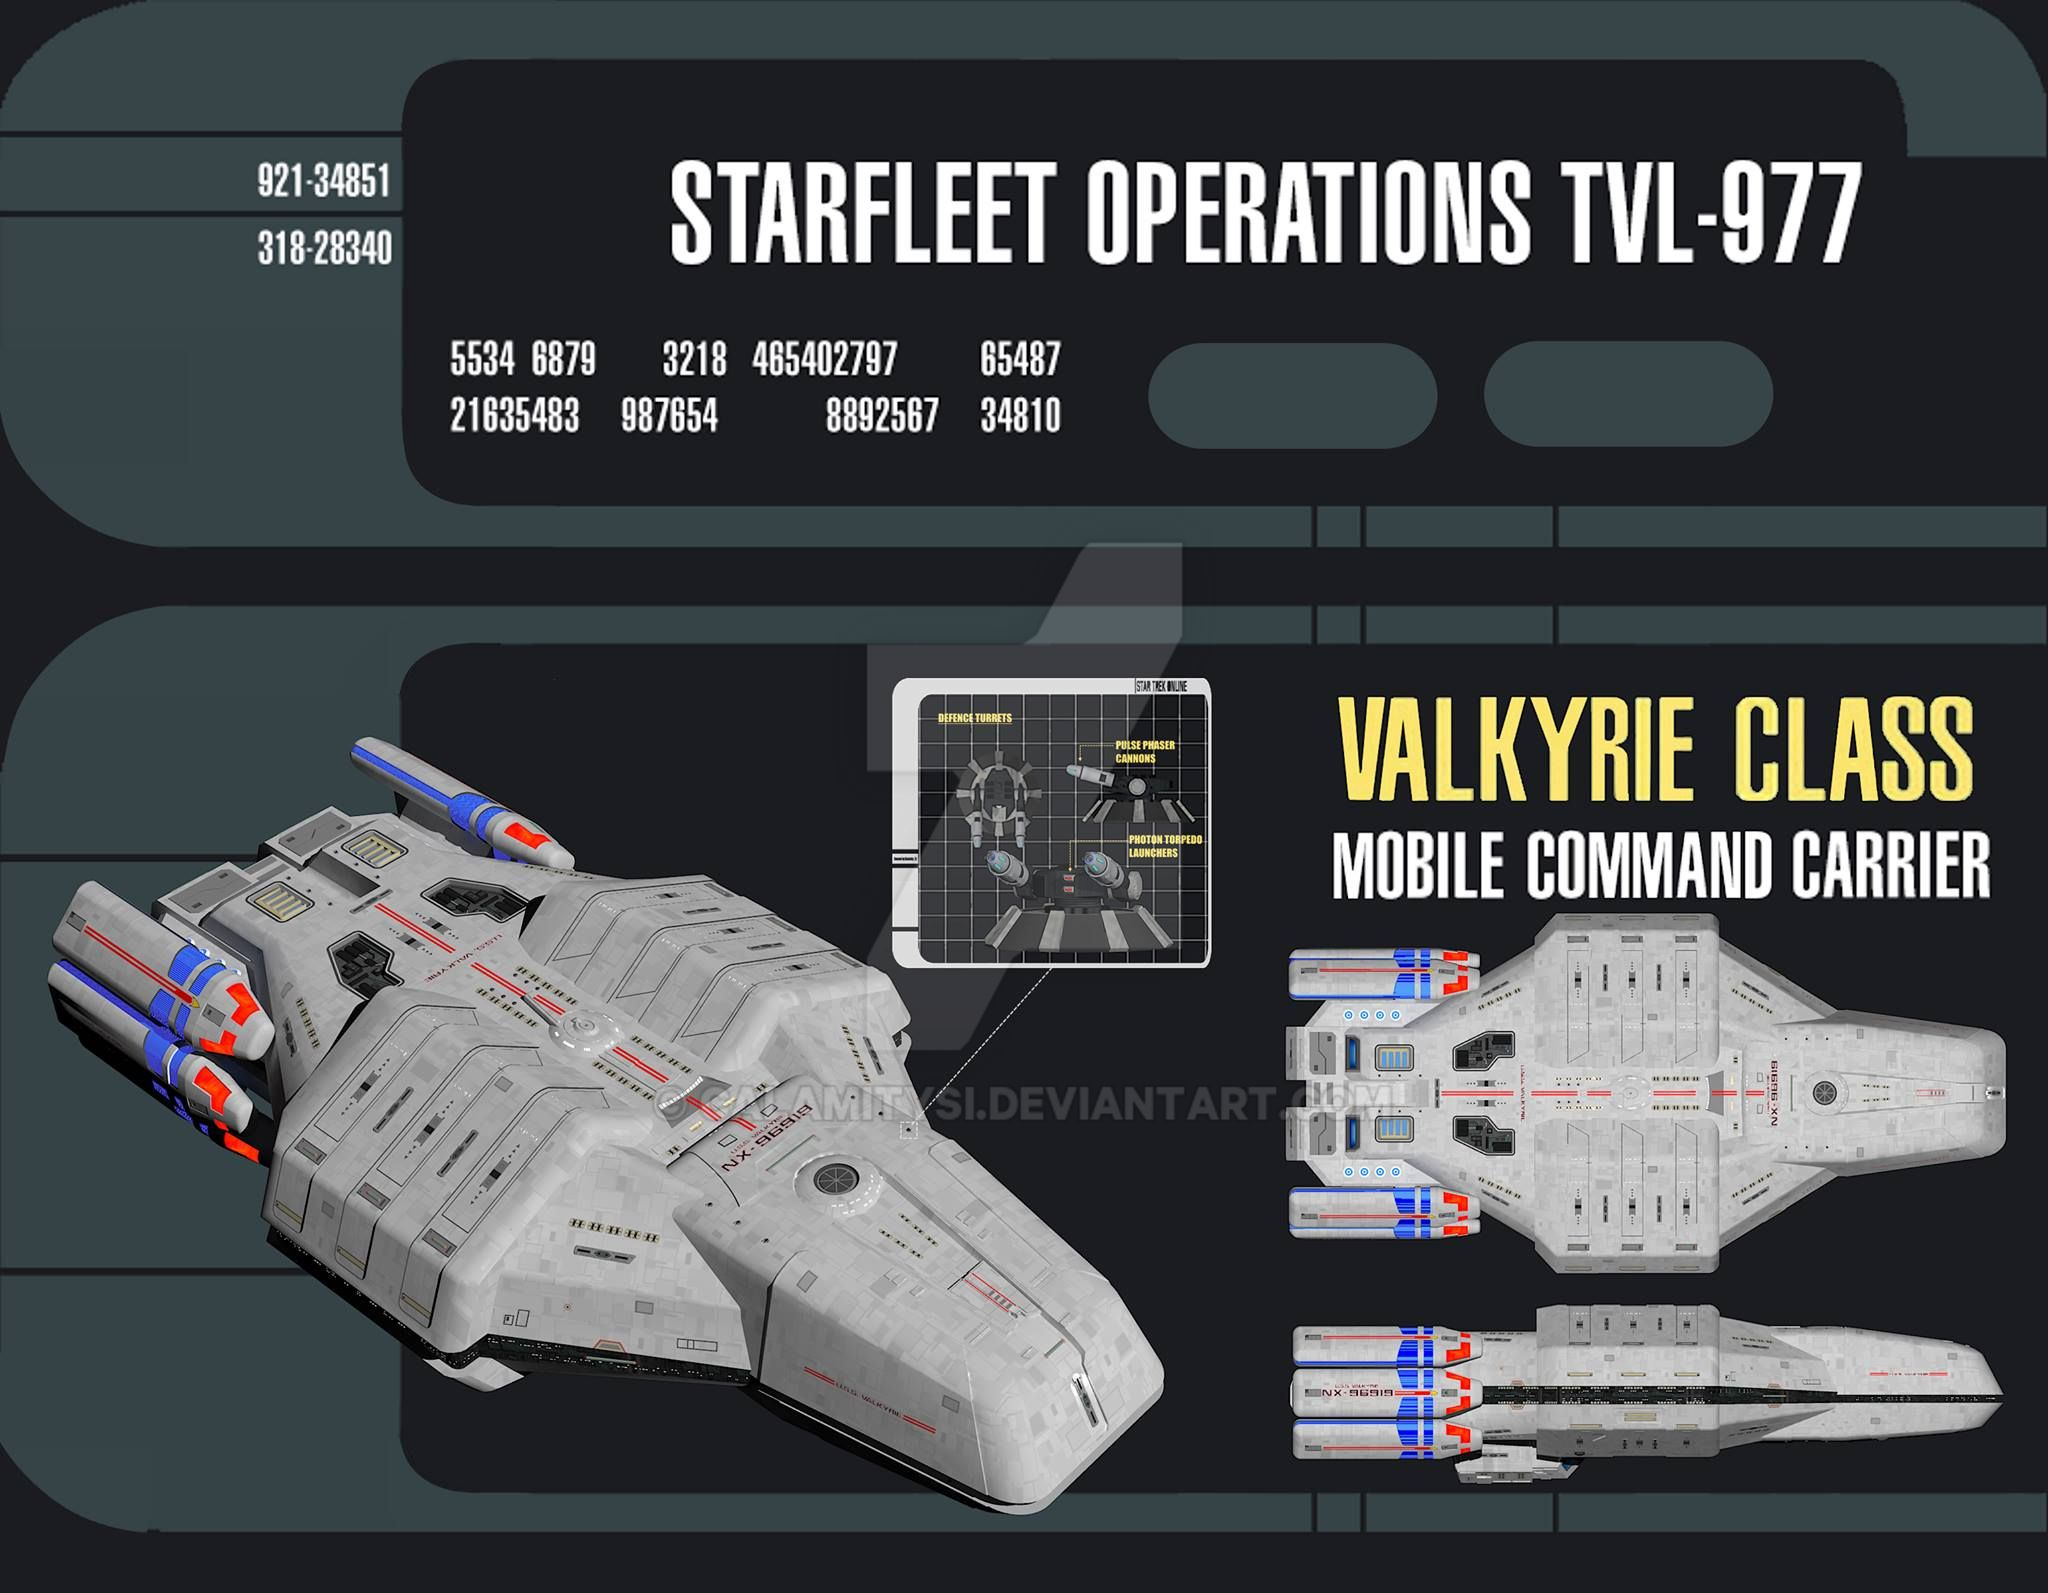 Valkyrie Class Mobile Command Carrier 12032629_10153776141991329_9191868728296419207_o_by_calamitysi-d9uk4nt